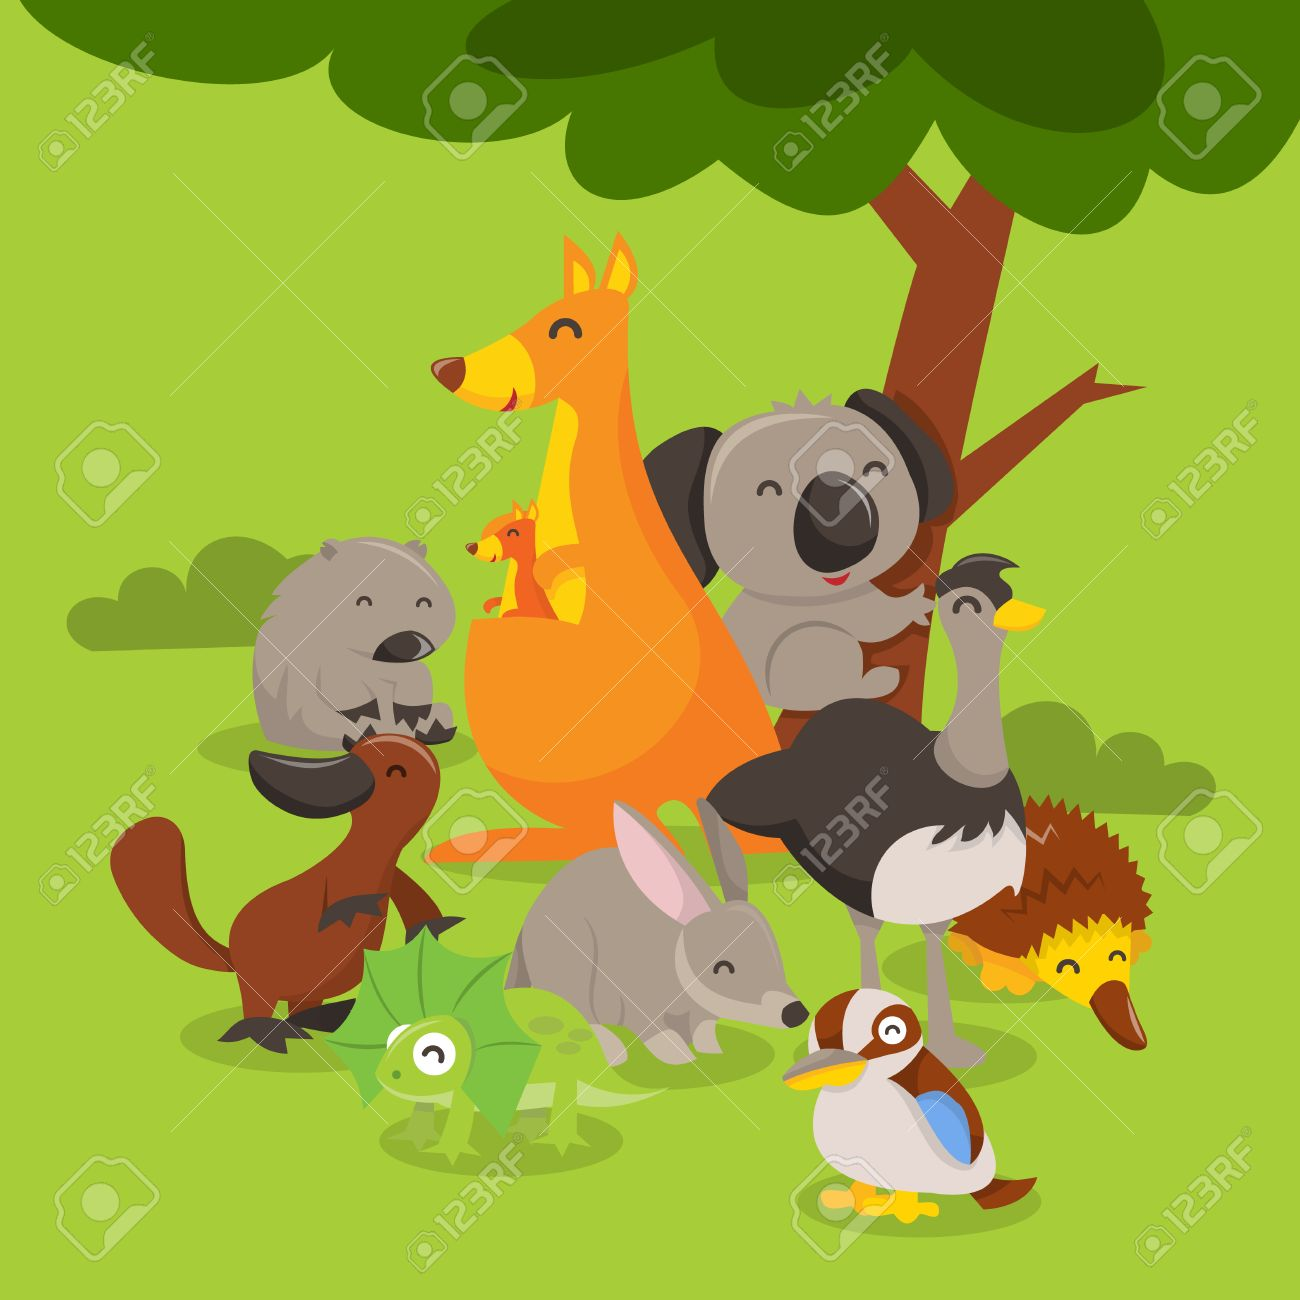 A Cartoon Vector Illustration Of A Group Of Cute And Happy Australian Royalty Free Cliparts Vectors And Stock Illustration Image 39734499